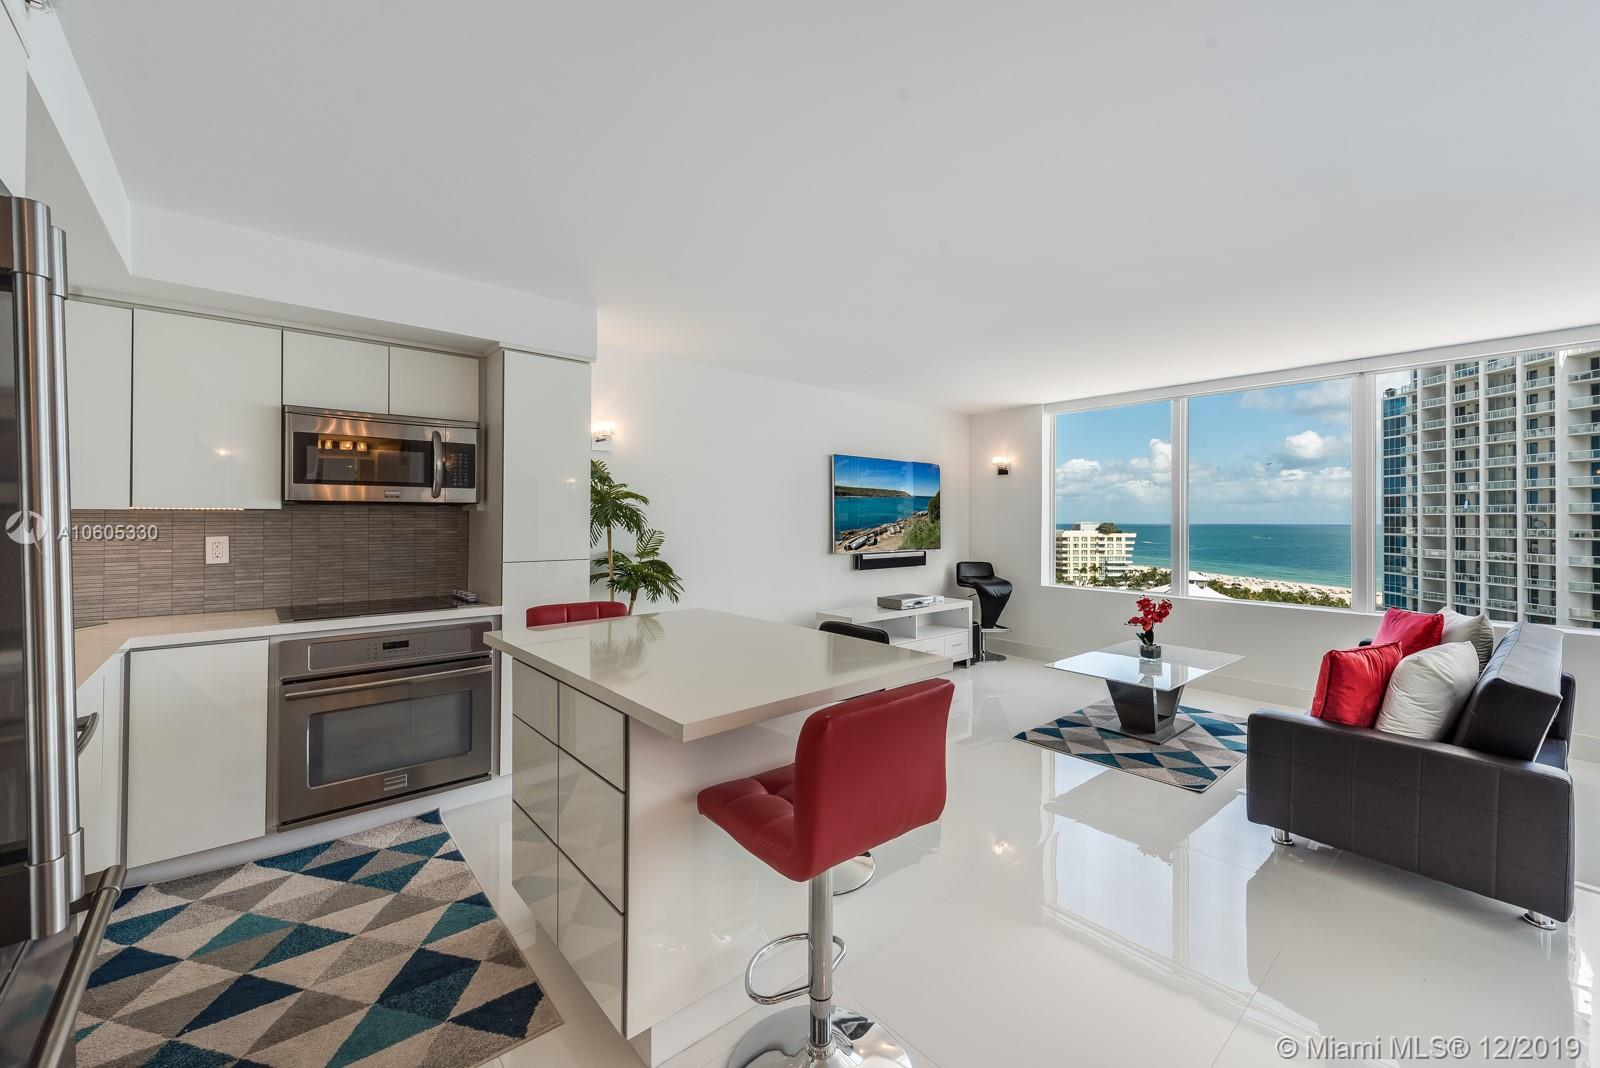 400 S Pointe Dr, 1406 - Miami Beach, Florida